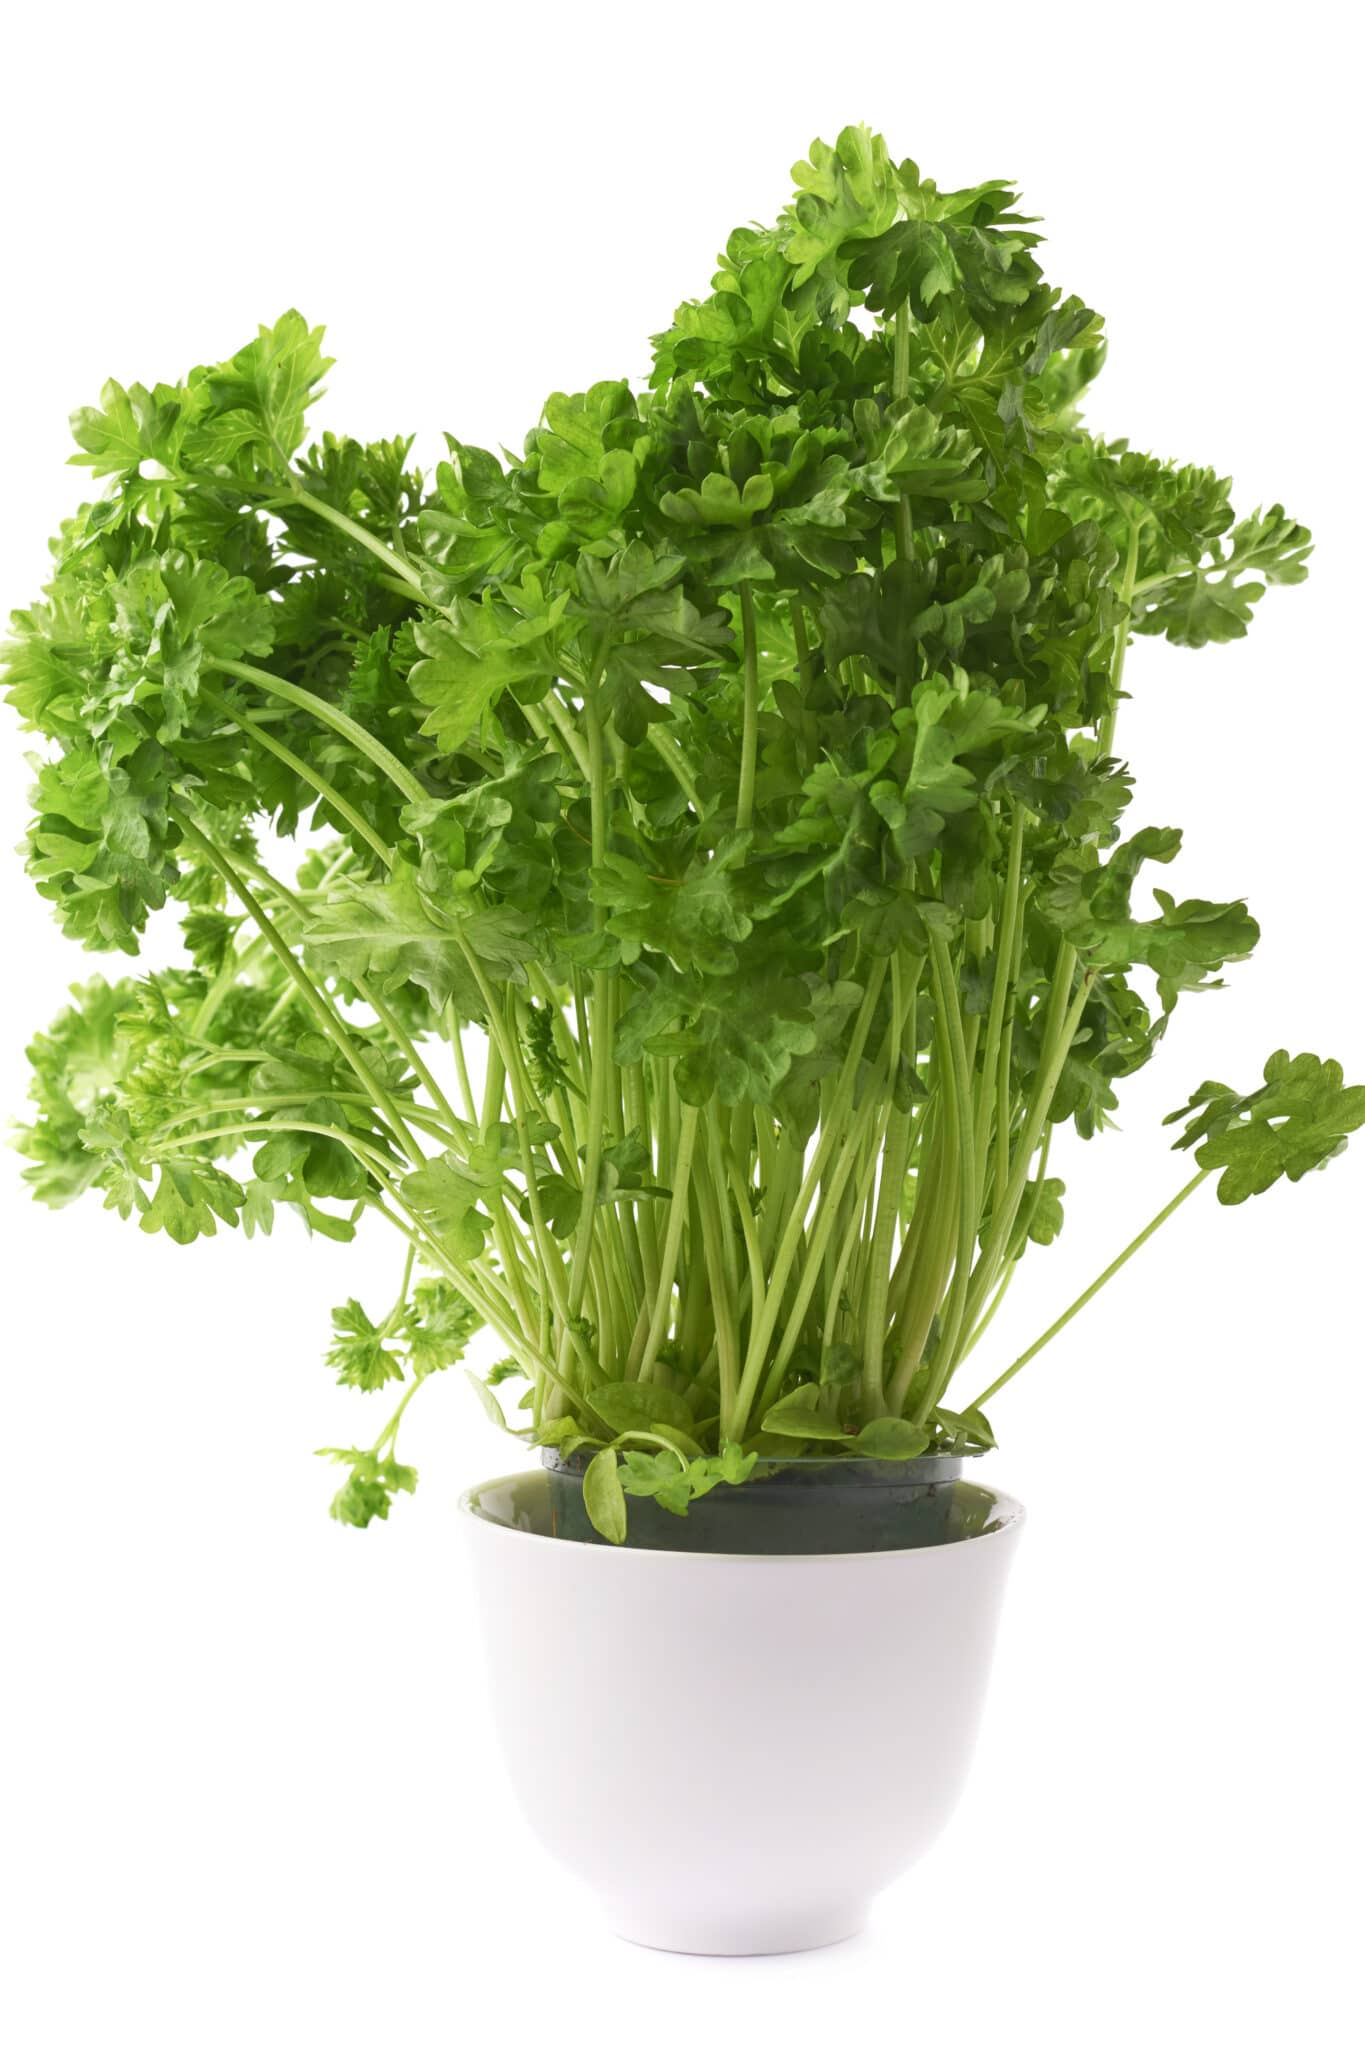 garden parsley plant in a white ceramic pot, composition isolated over the white background.